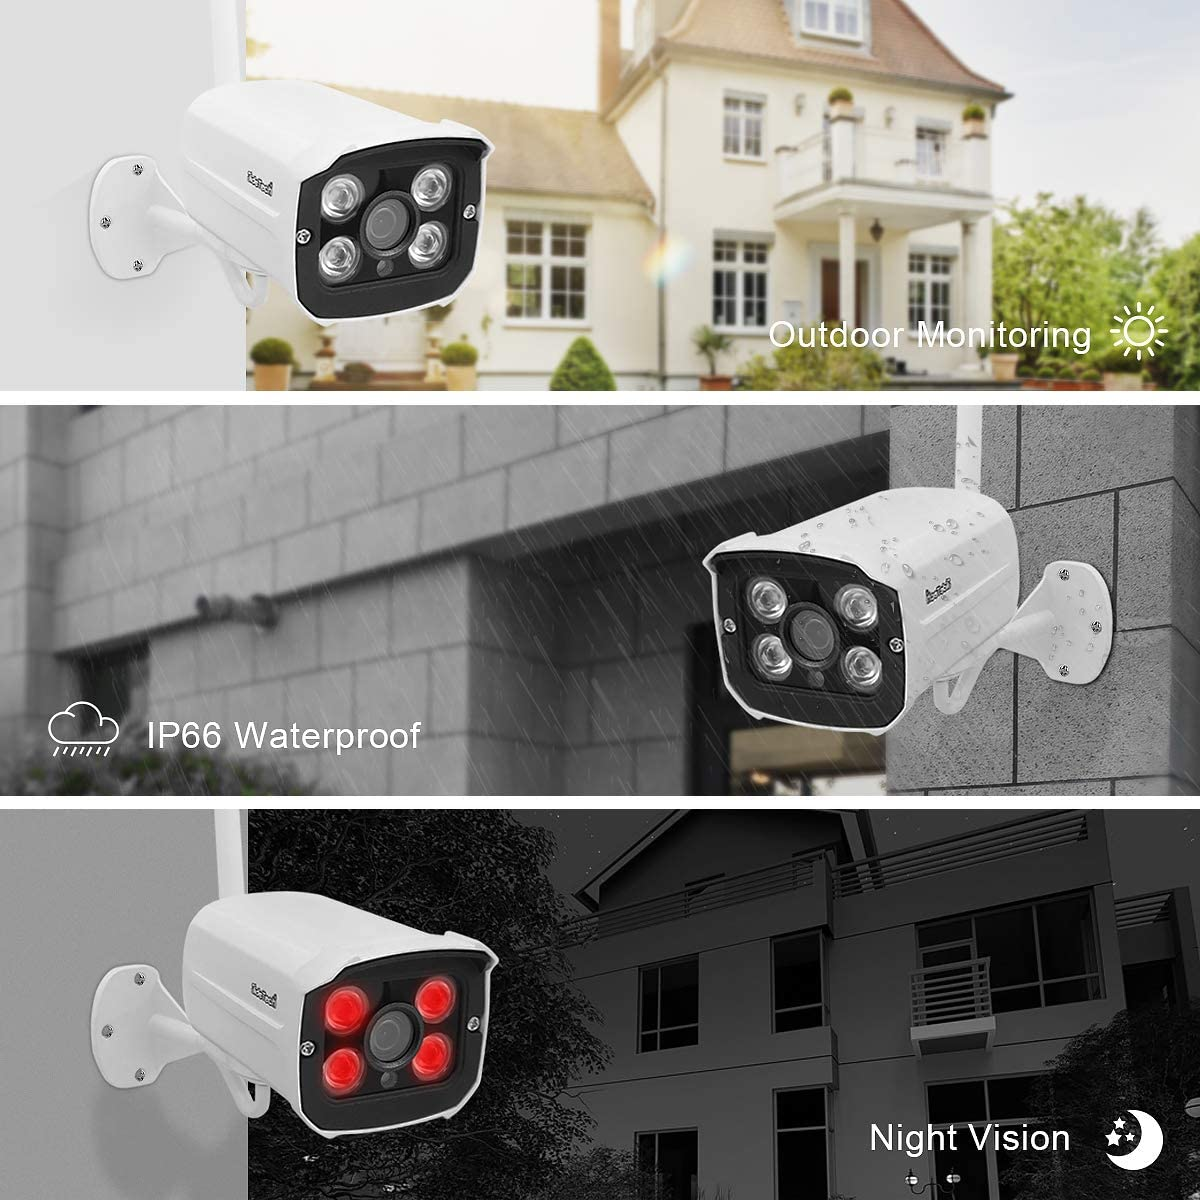 P2P Wireless Security Camera System Plug/&Play 1080P 4CH NVR 4Pcs 2MP WiFi Video Surveillance Cameras with 1TB Hard Drive H.265 Night Vision Motion Detection 24//7 Recording Home Outdoor